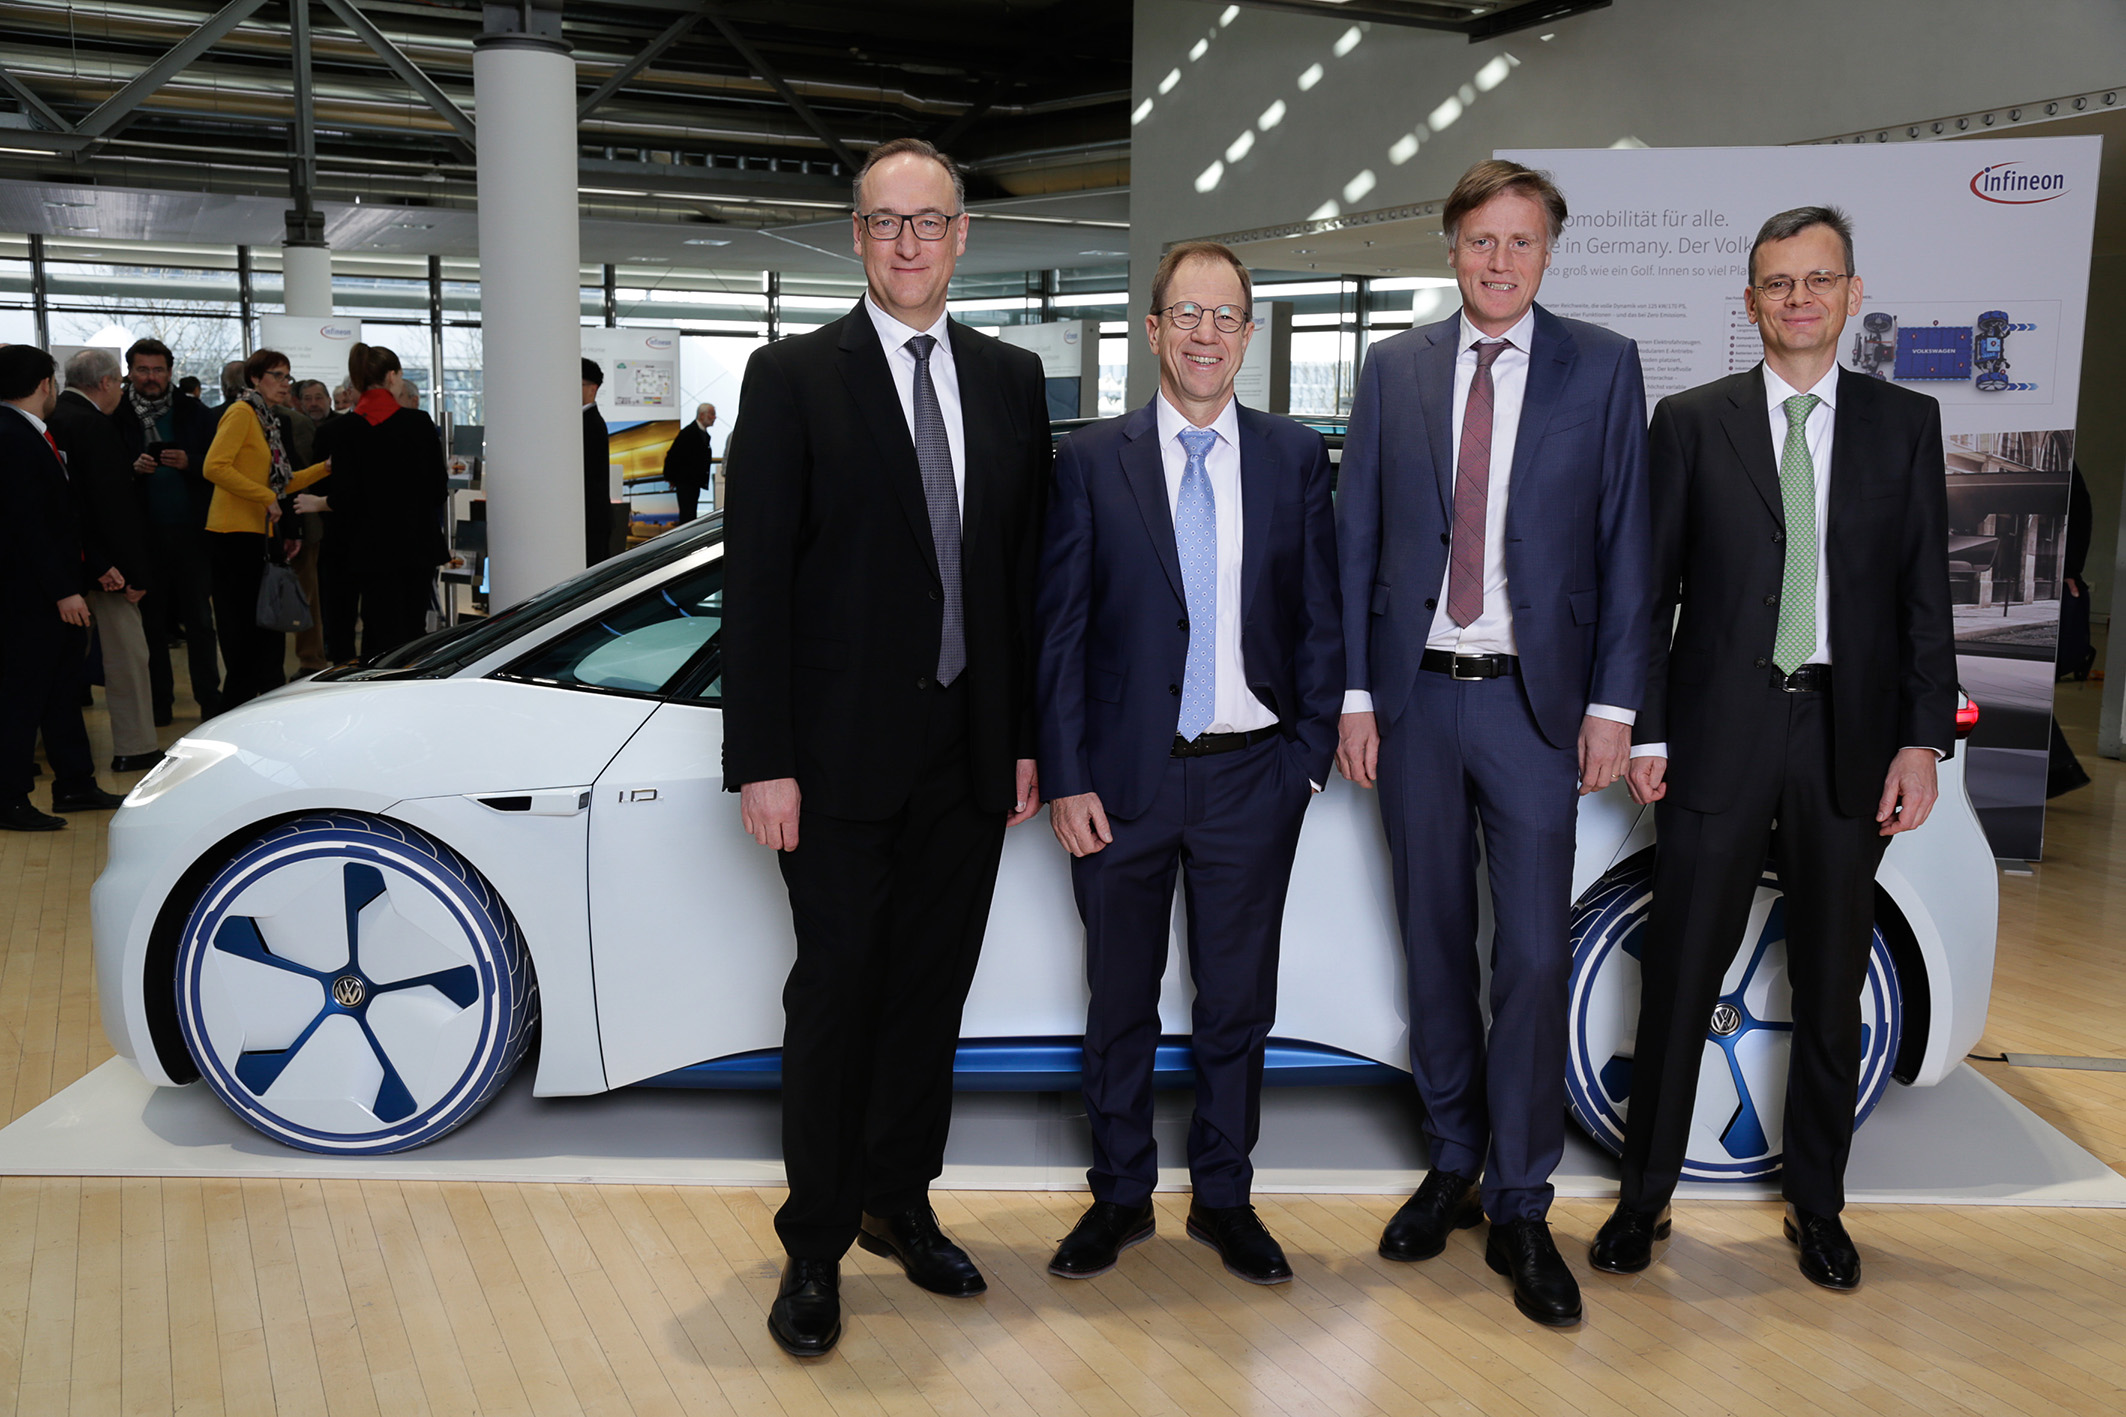 The Executive Board of Infineon Technologies AG at the Annual General Meeting 2019: Dr. Helmut Gassel, Dr. Reinhard Ploss, Jochen Hanebeck, Dominik Asam (from left to right).